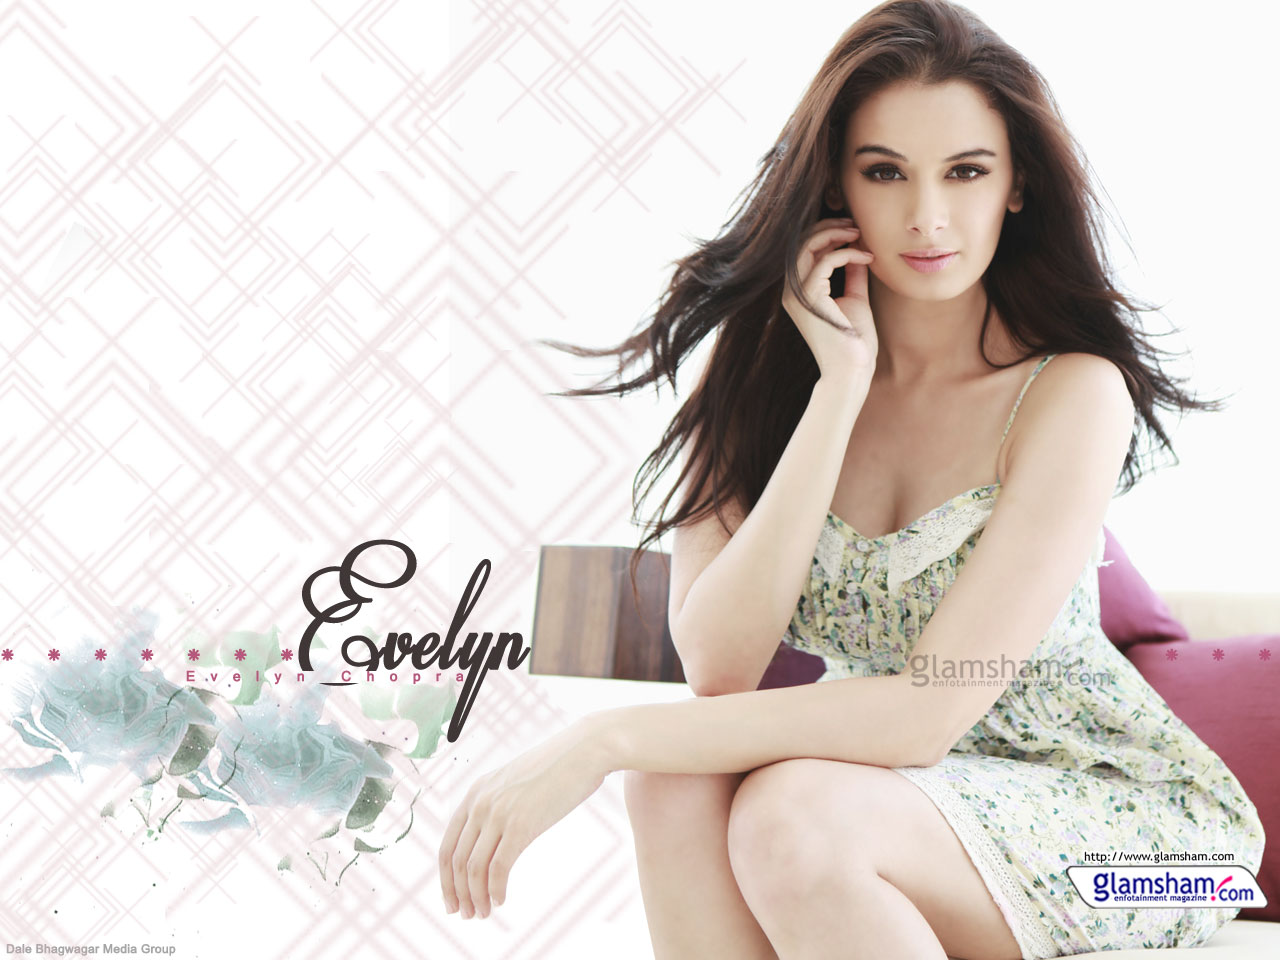 1280x960 - Evelyn Sharma Wallpapers 9